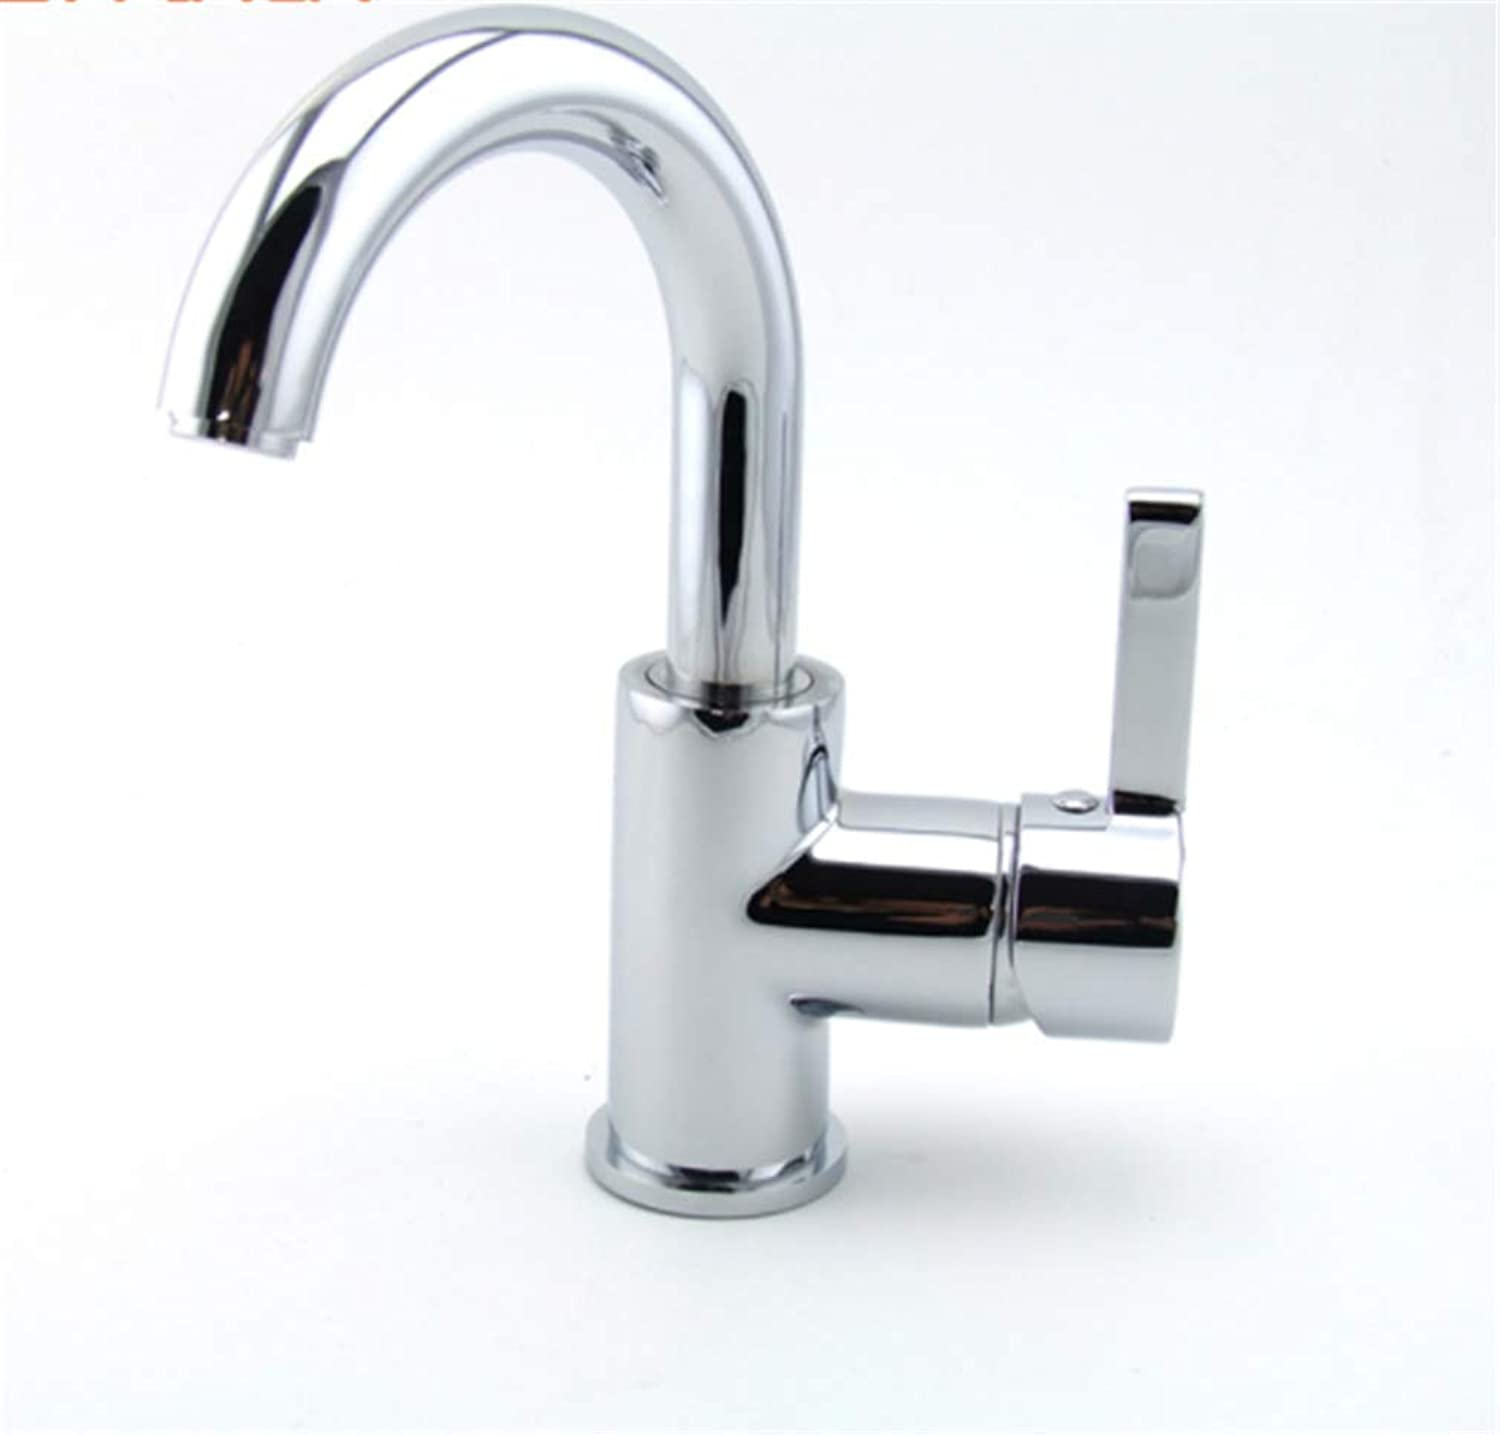 Taps Kitchen Basin Mixer Pull Out Mixercontemporary Brass Chromed Single Handle Single Hole Bathroom Tap Mixer